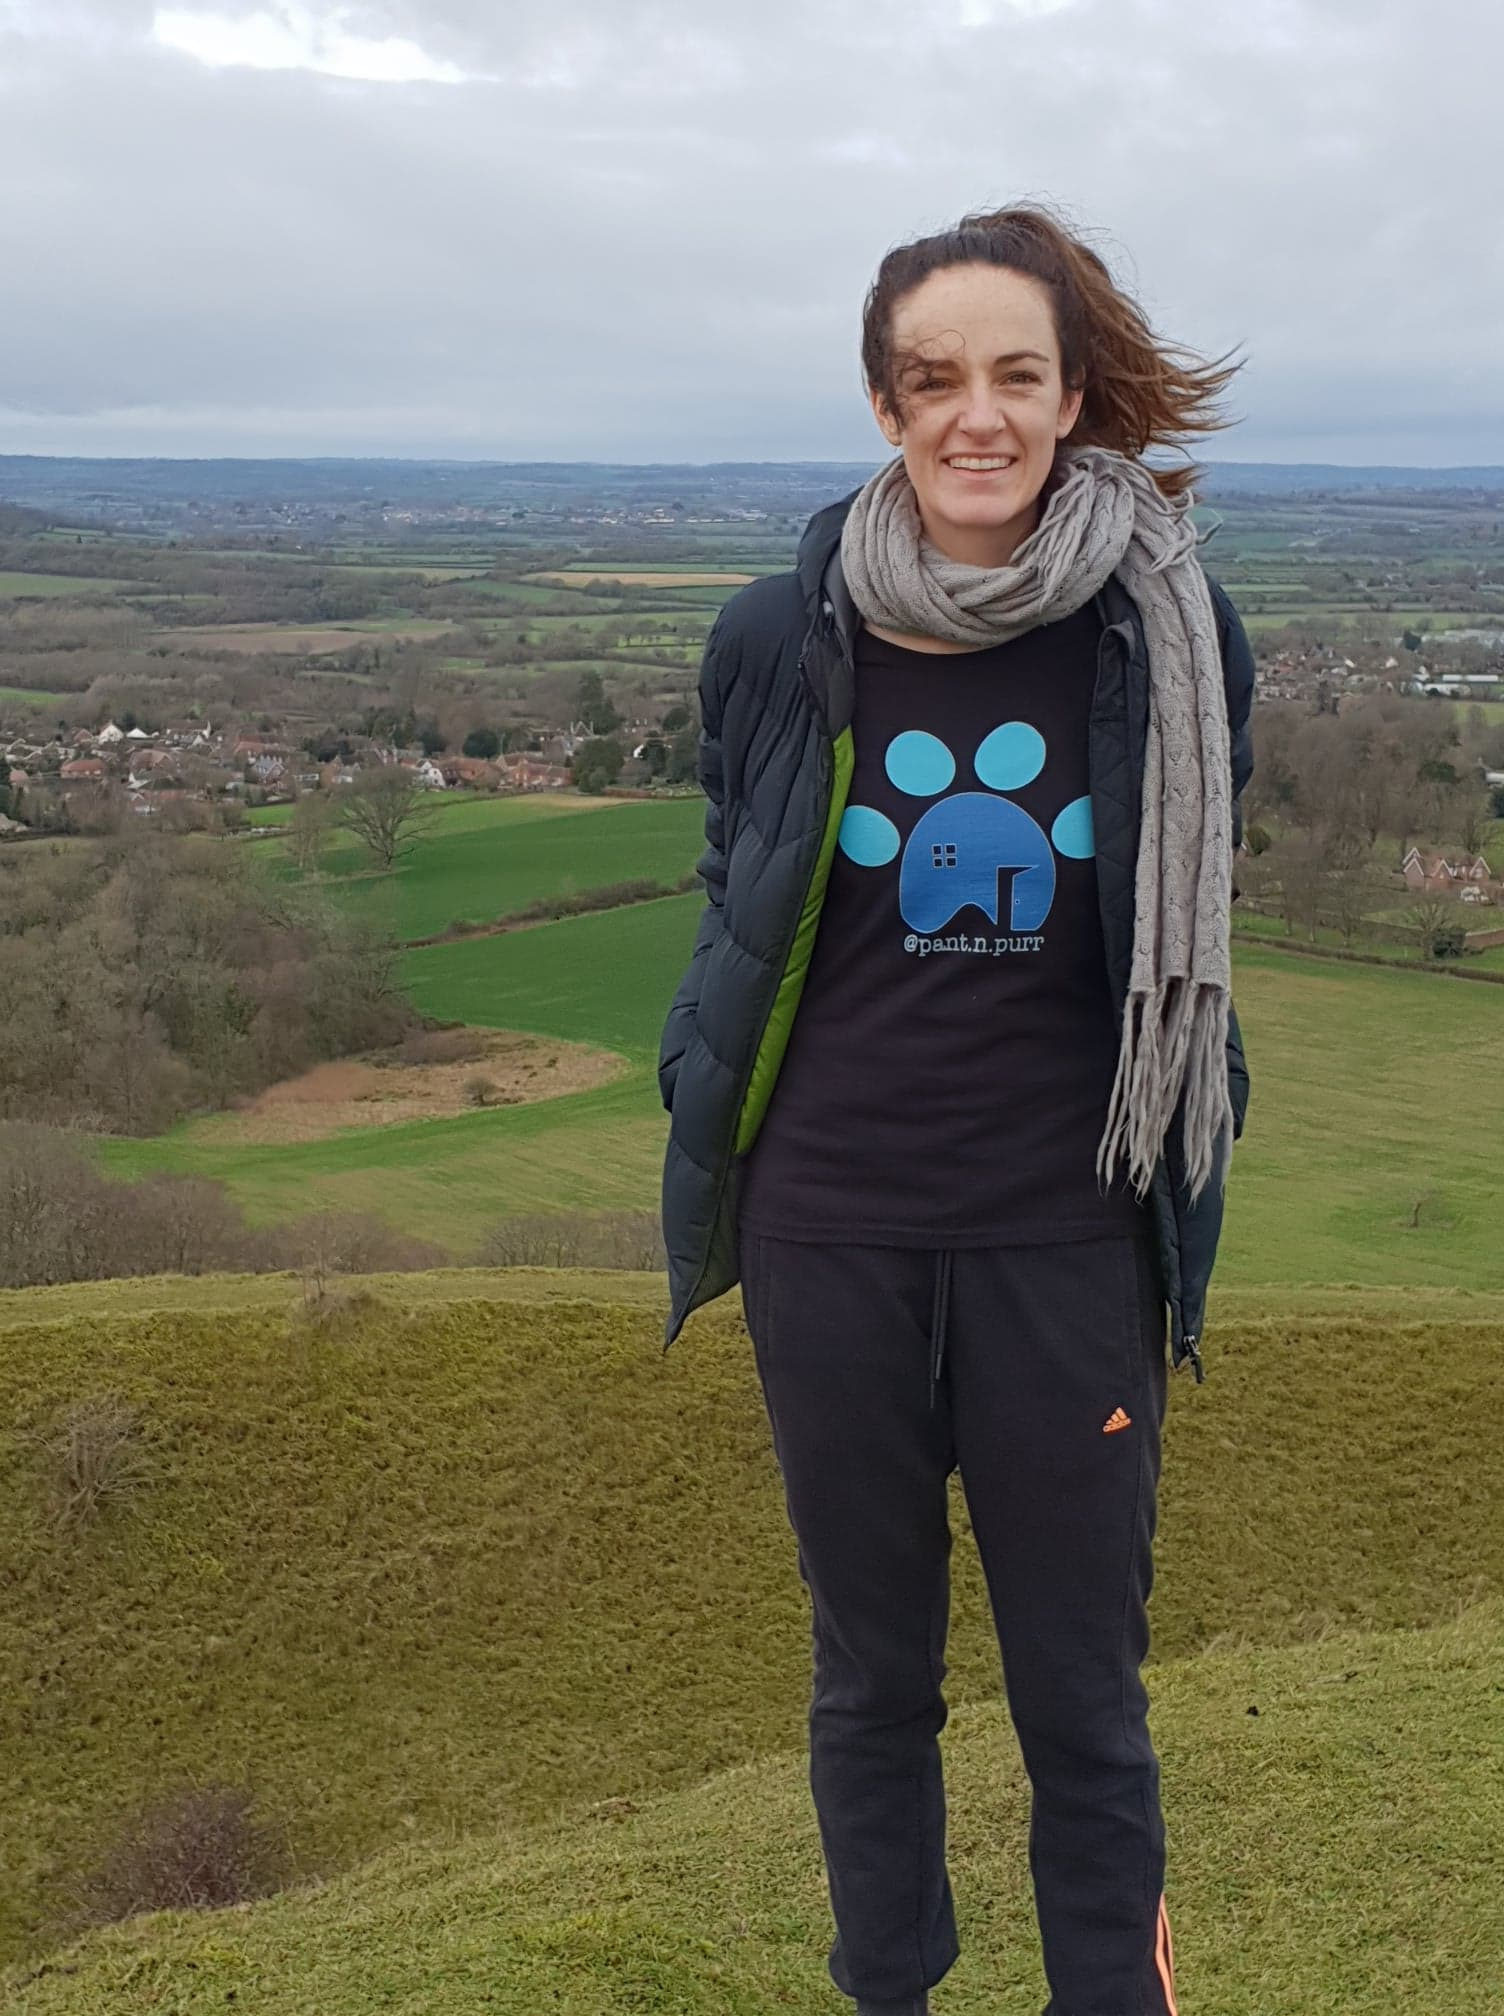 Shaunie from Pant 'n' Purr in the Fruit Of The Loom Valueweight t-shirt